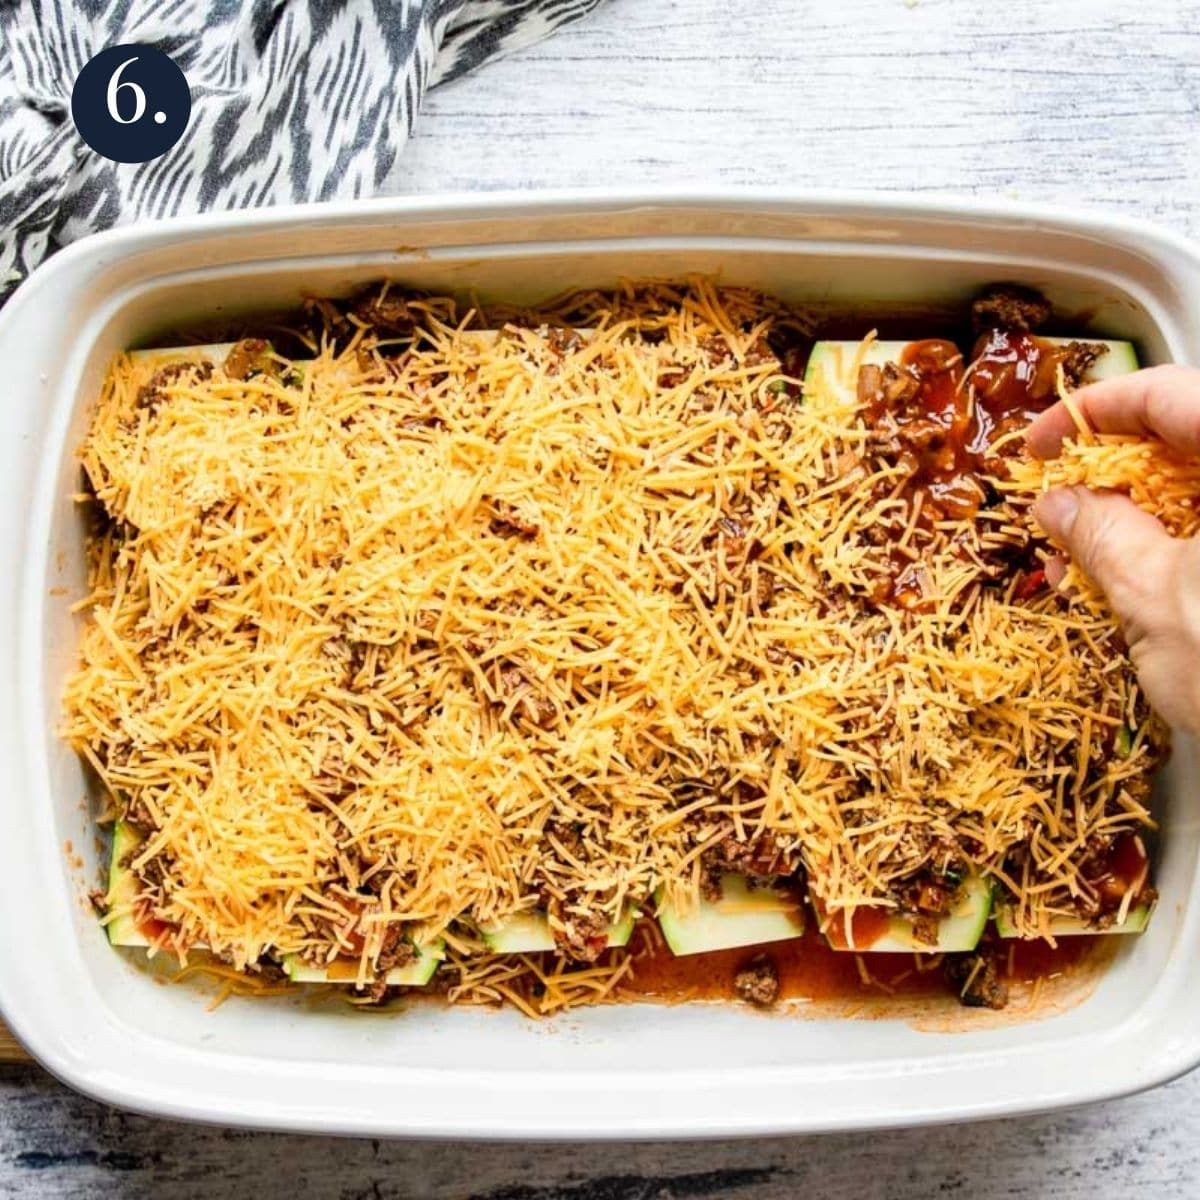 zucchini enchiladas topped with shredded cheese